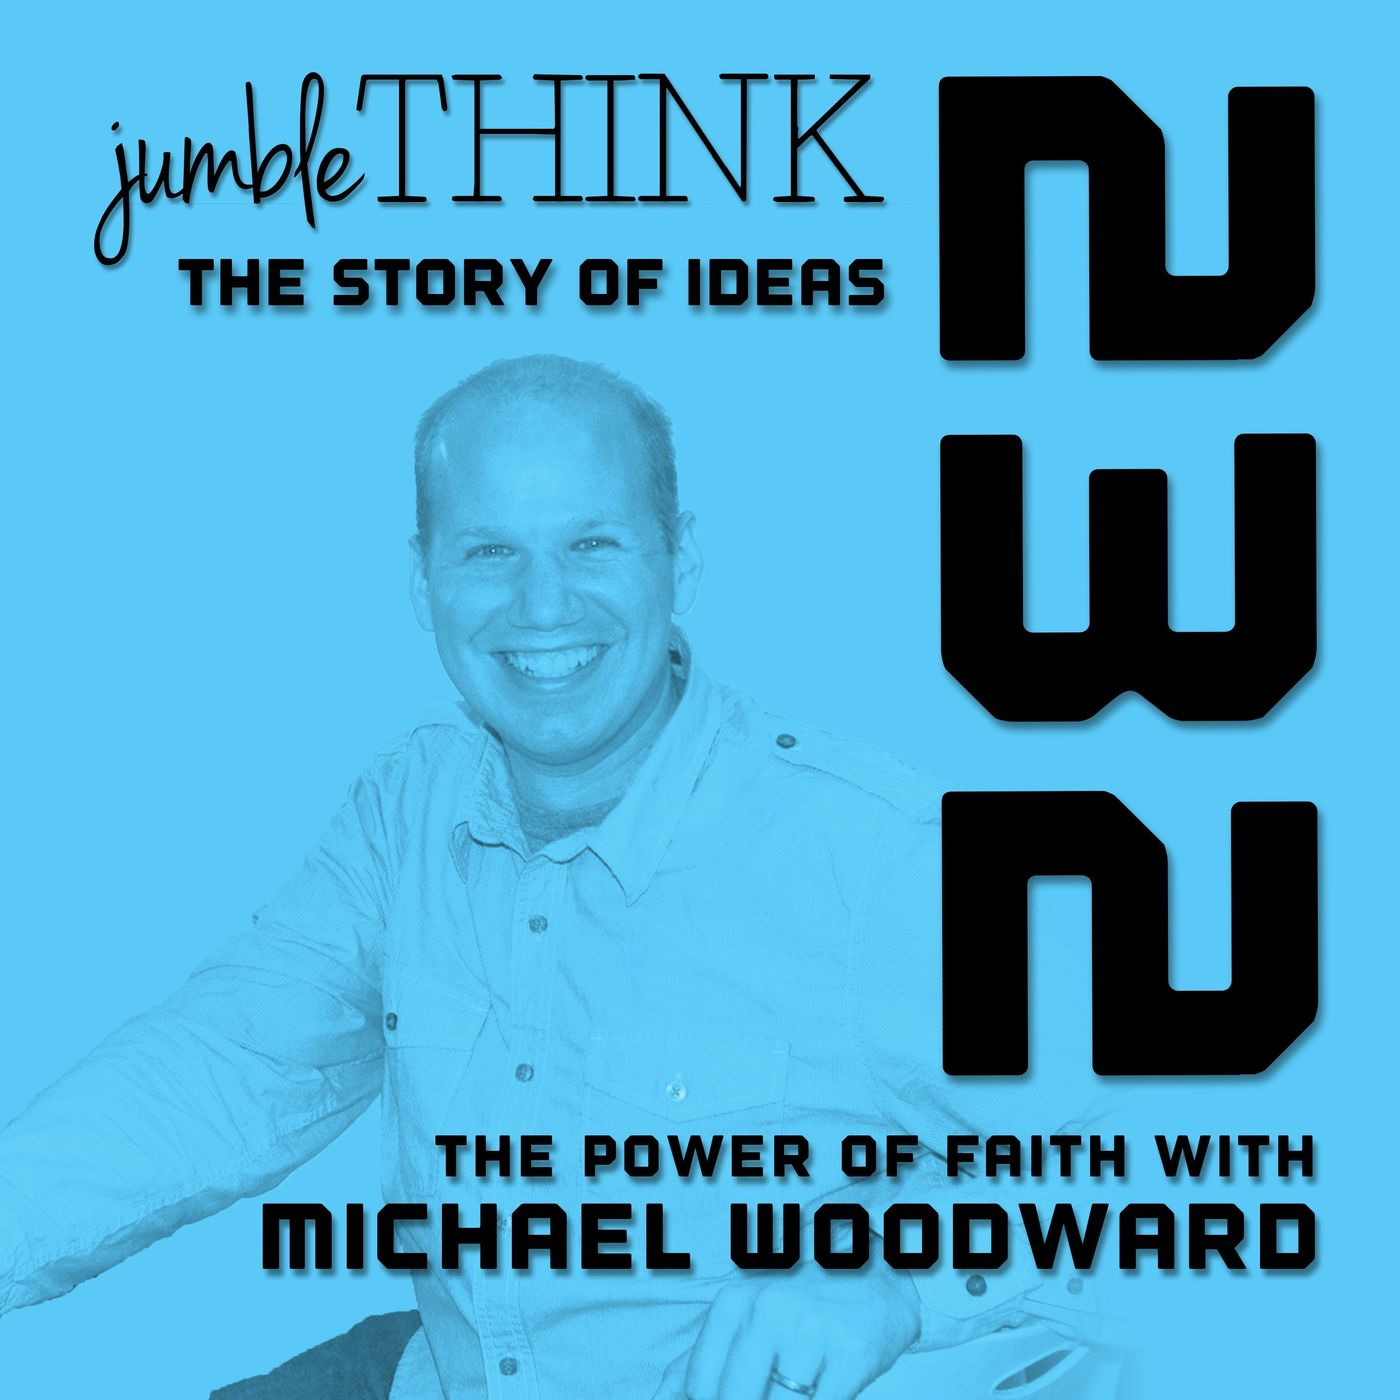 The Power of Faith with Michael Woodward